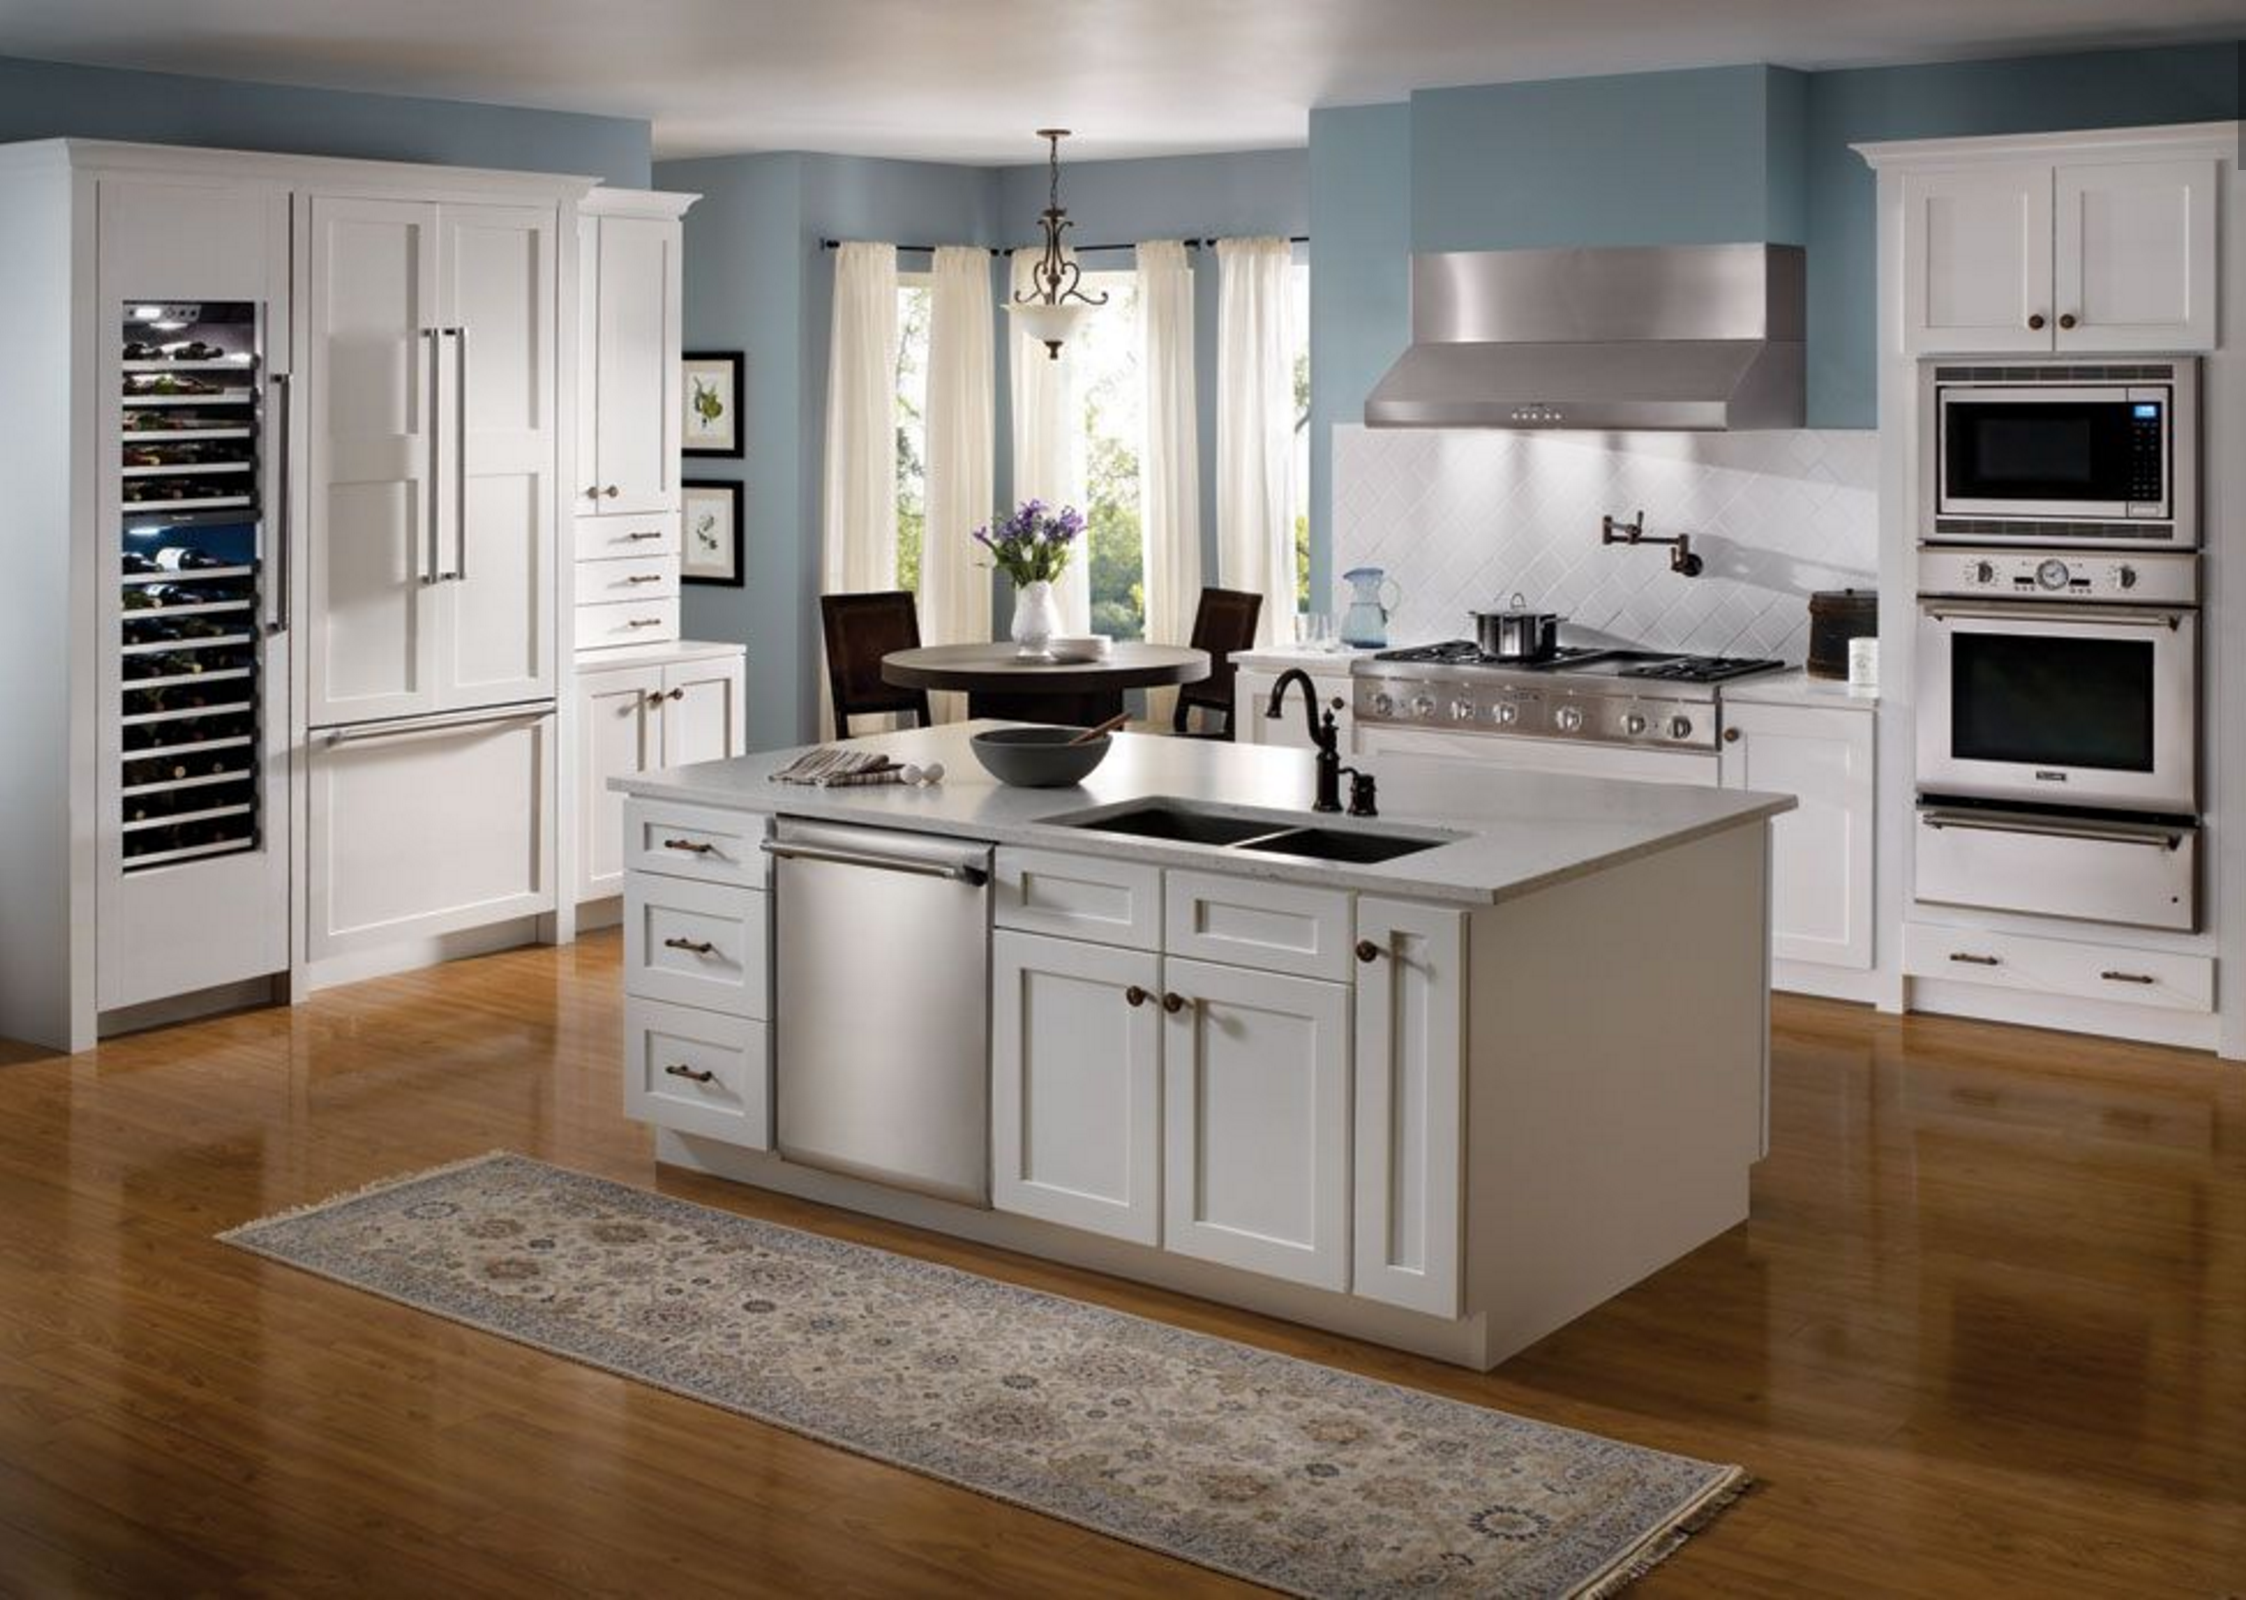 Best What's Your Favorite Detail In This Super Pleasant Kitchen 640 x 480